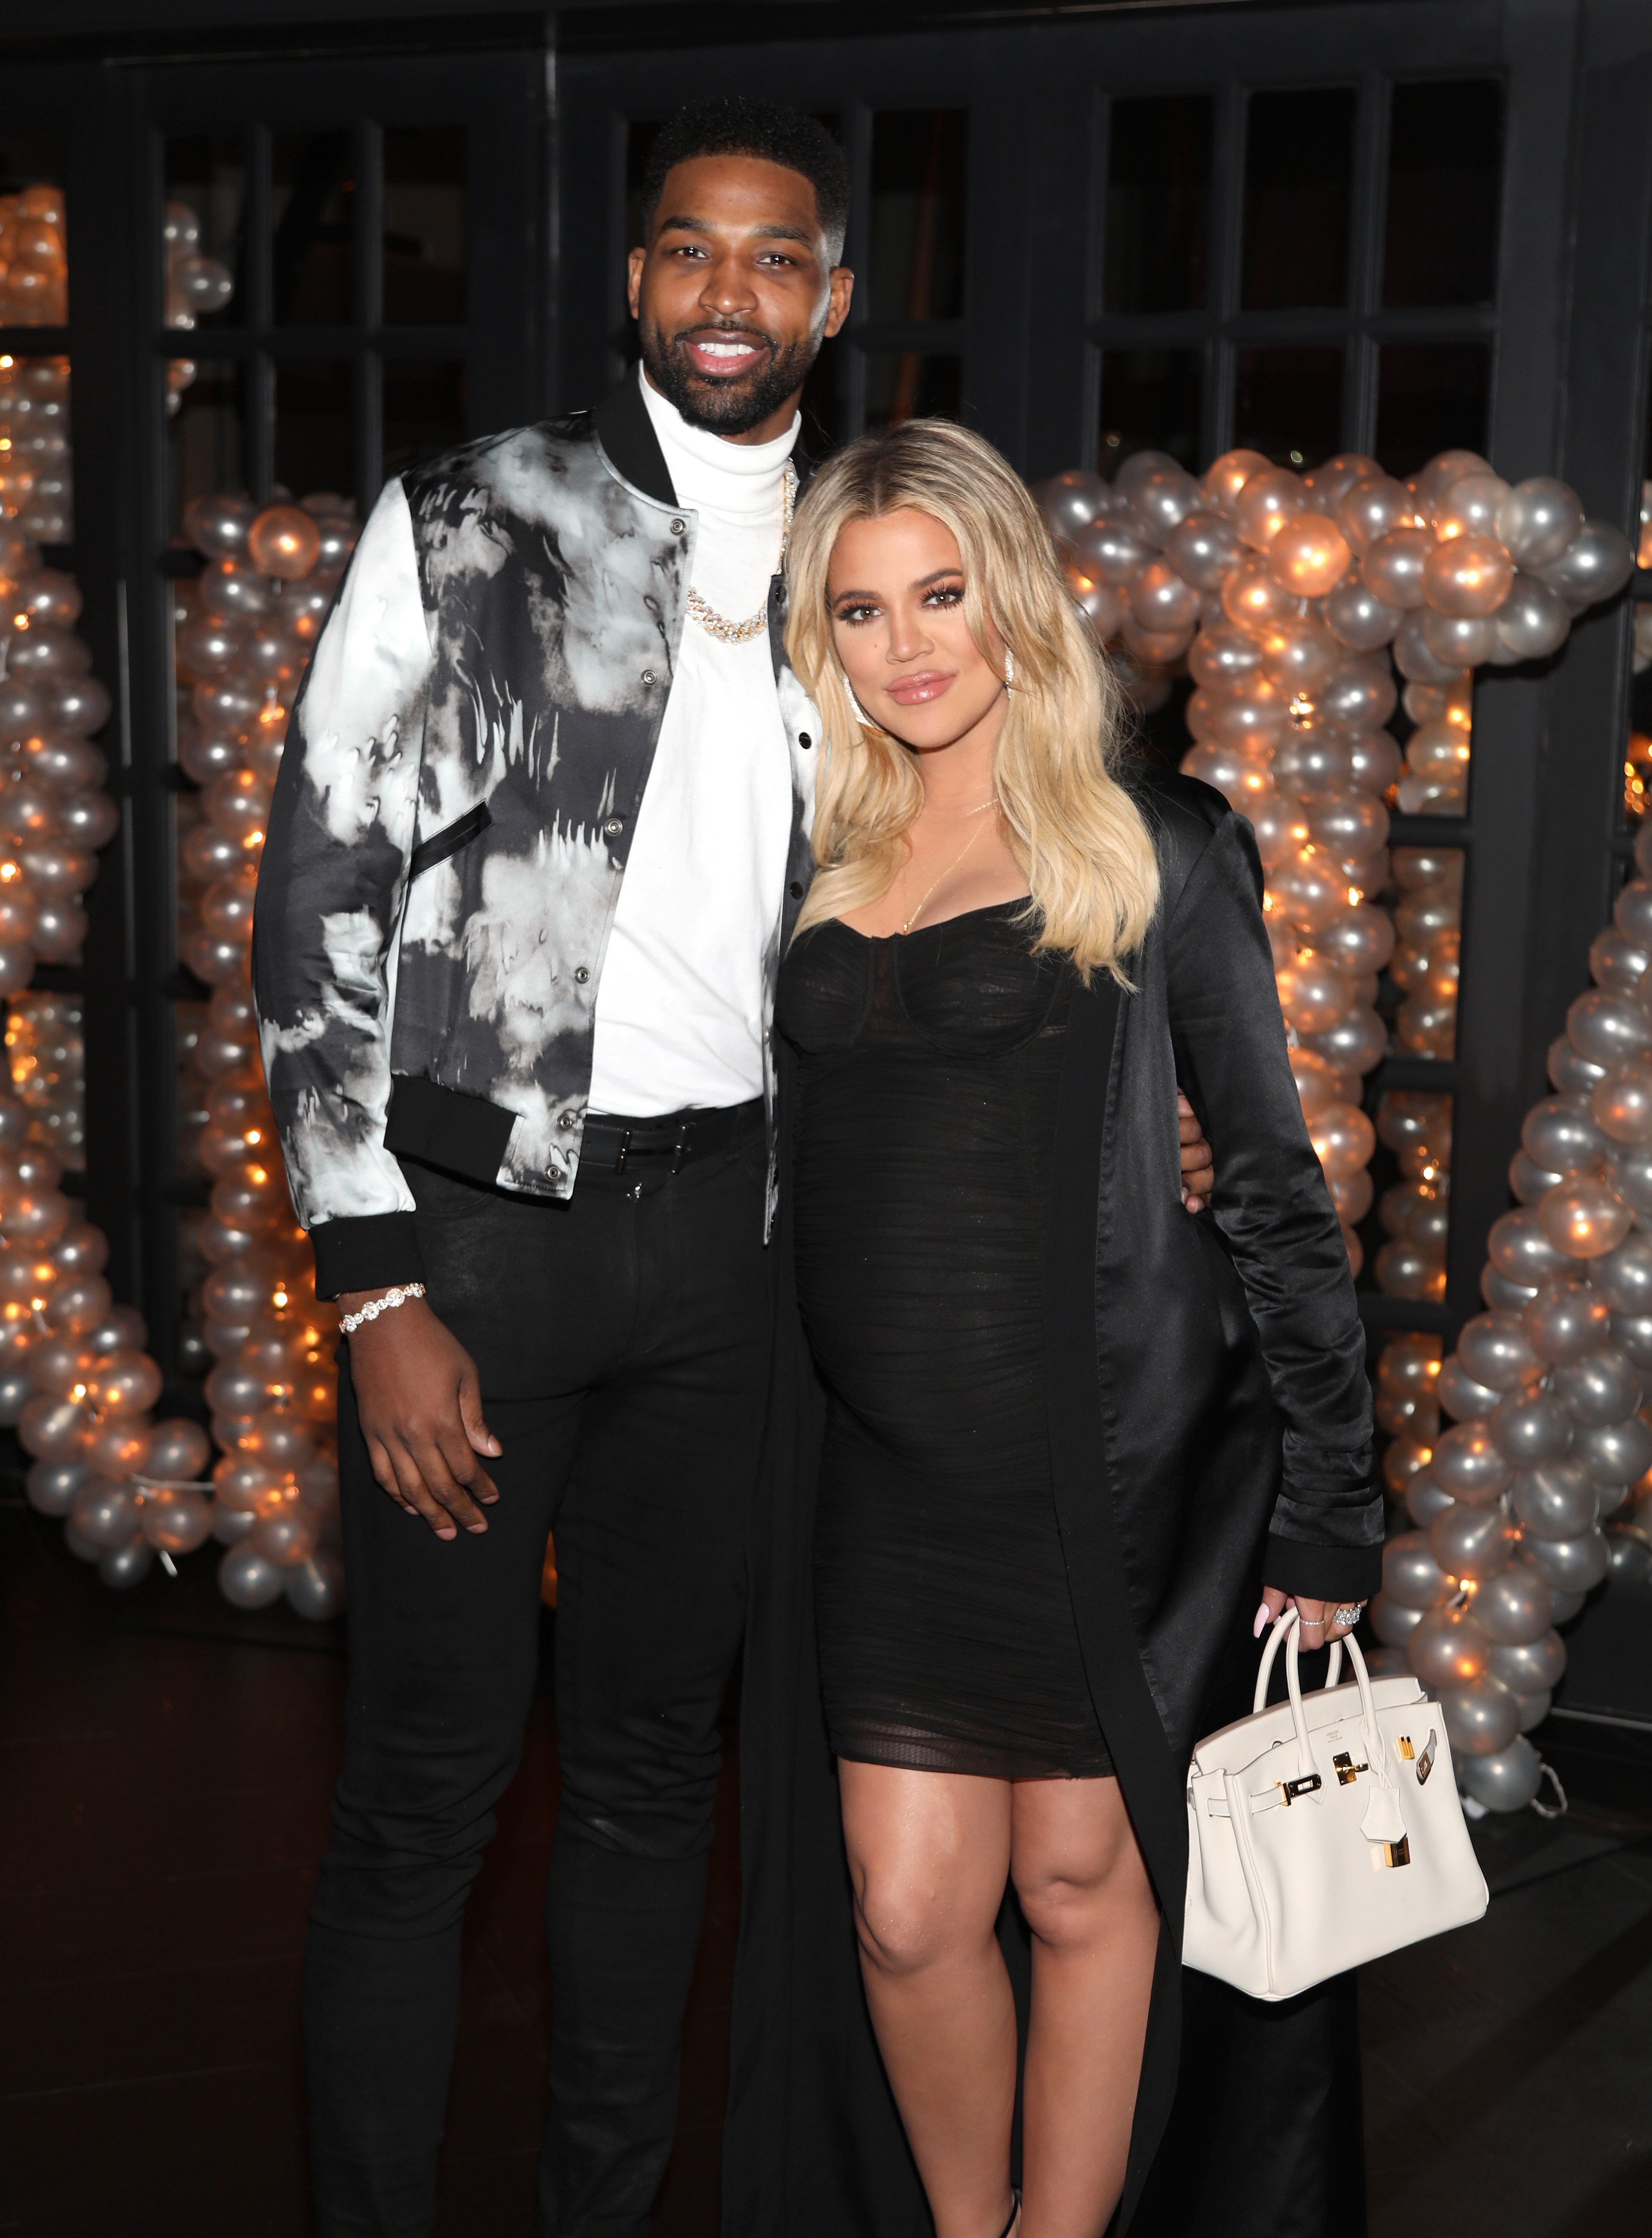 Tristan Thompson and Khloe Kardashian pose for a photo as Remy Martin celebrates Tristan Thompson's Birthday at Beauty & Essex on March 10, 2018. | Photo: GettyImages